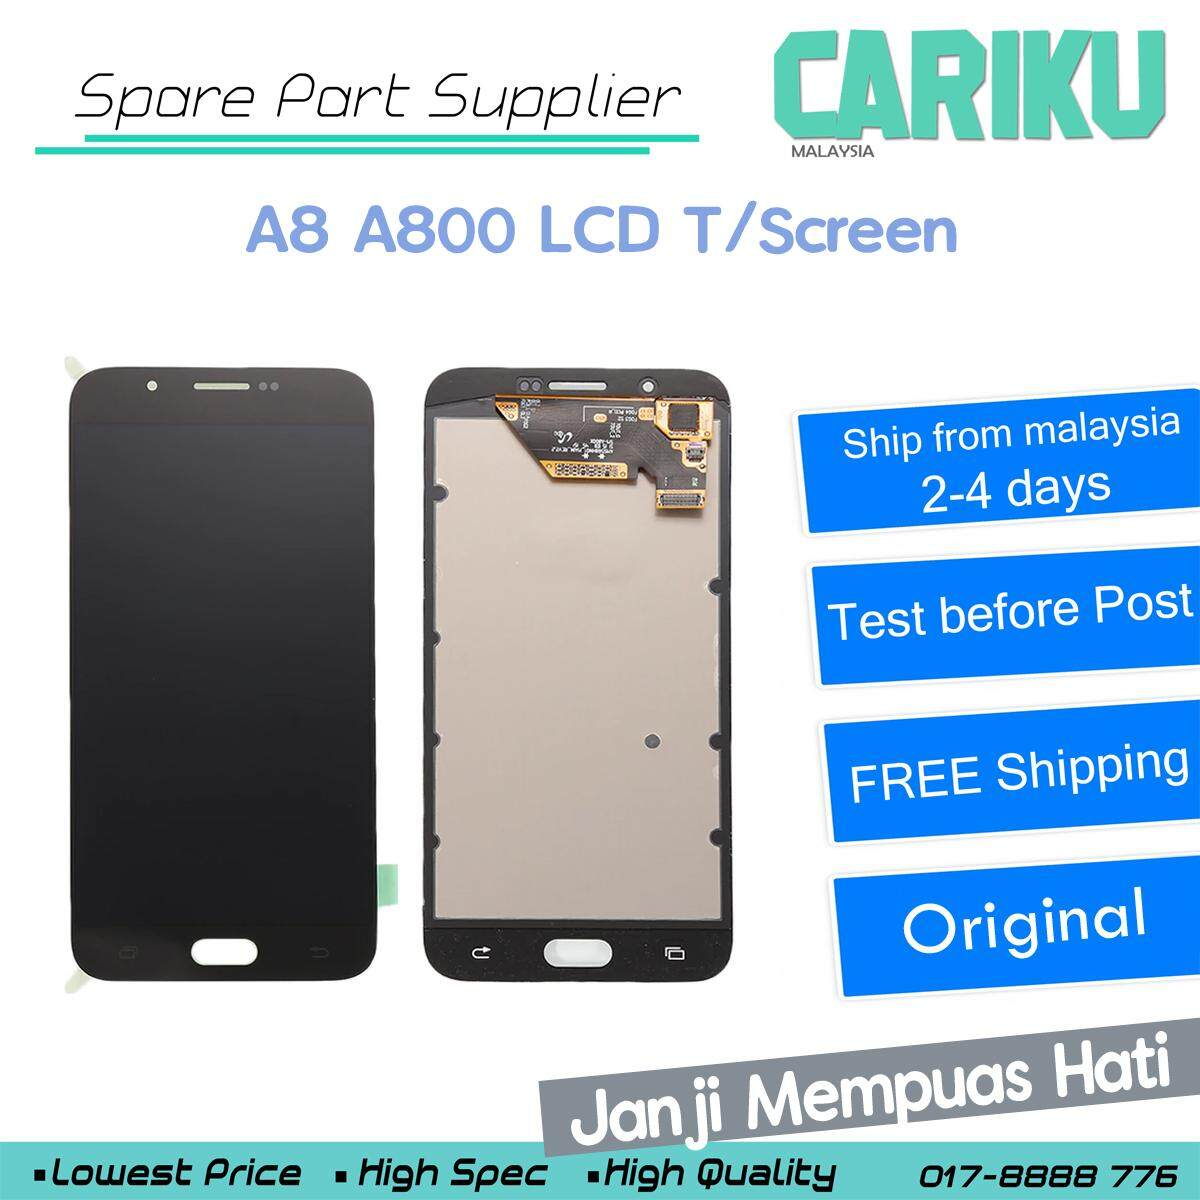 Samsung Galaxy A8 2016 A800 LCD Digitizer Touch Screen Replacement !! CARIKU